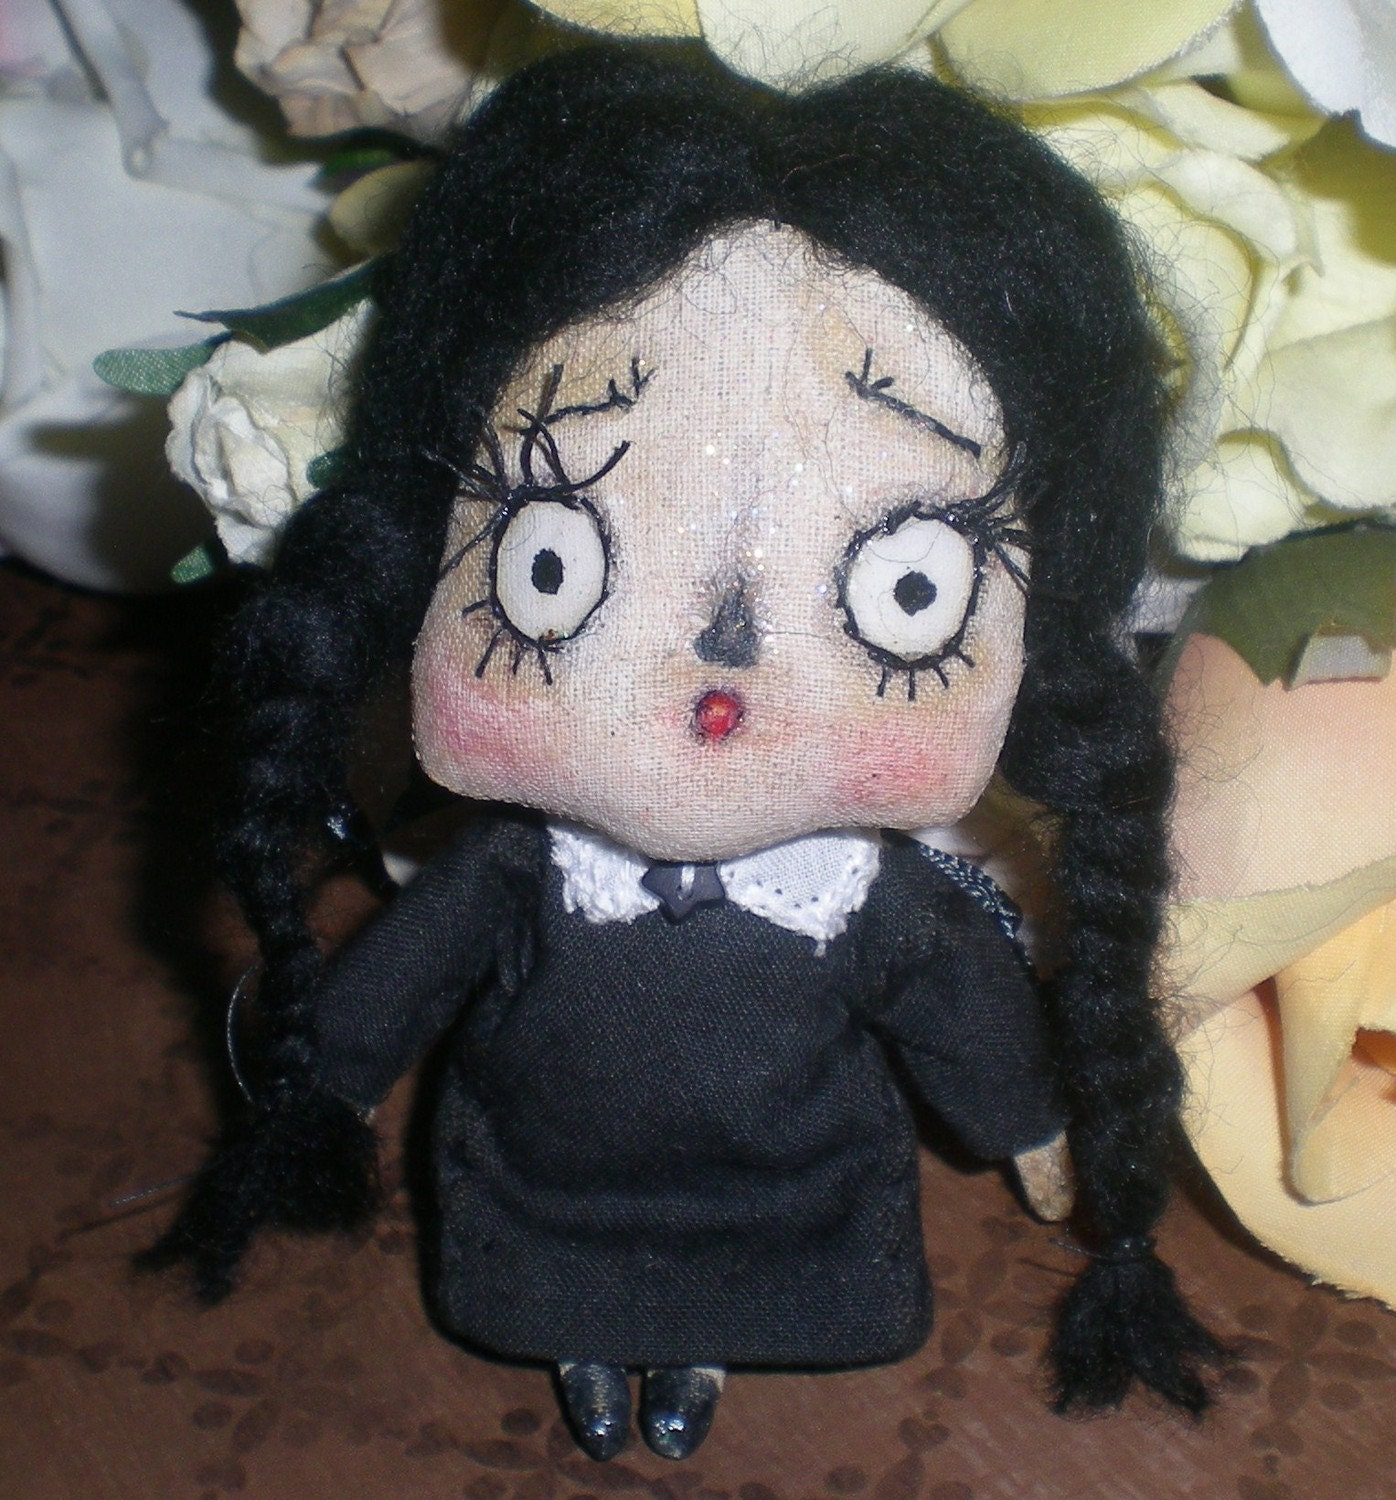 Wednesday Addams Tiny Art Doll